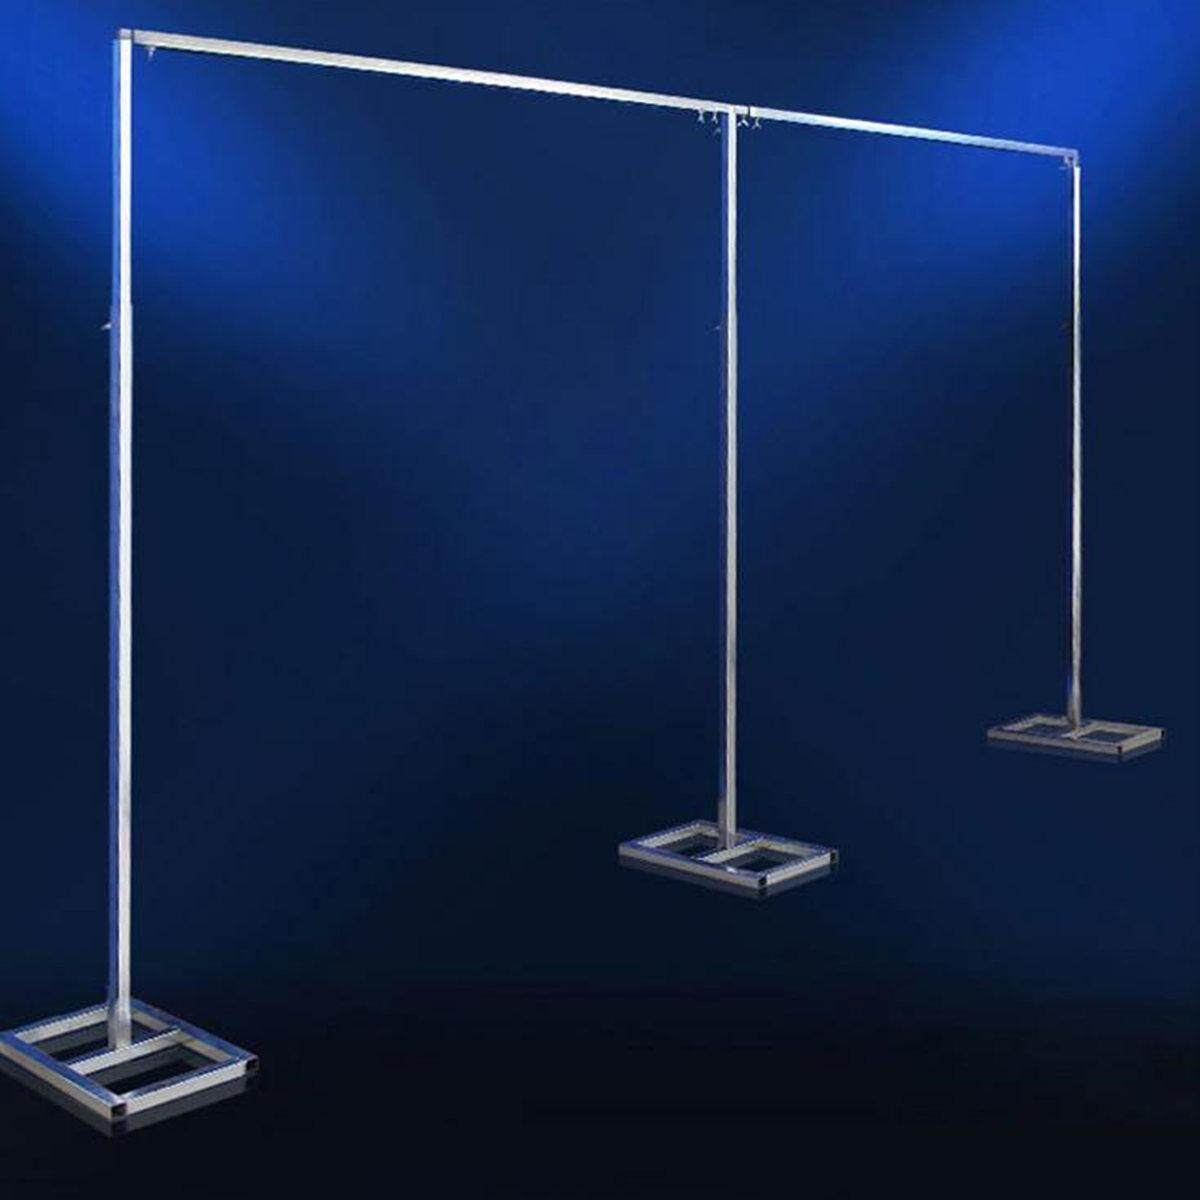 Adjustable Telescopic Curtain Wedding Backdrop Stand Support Frame  3x6m By Moonbeam.